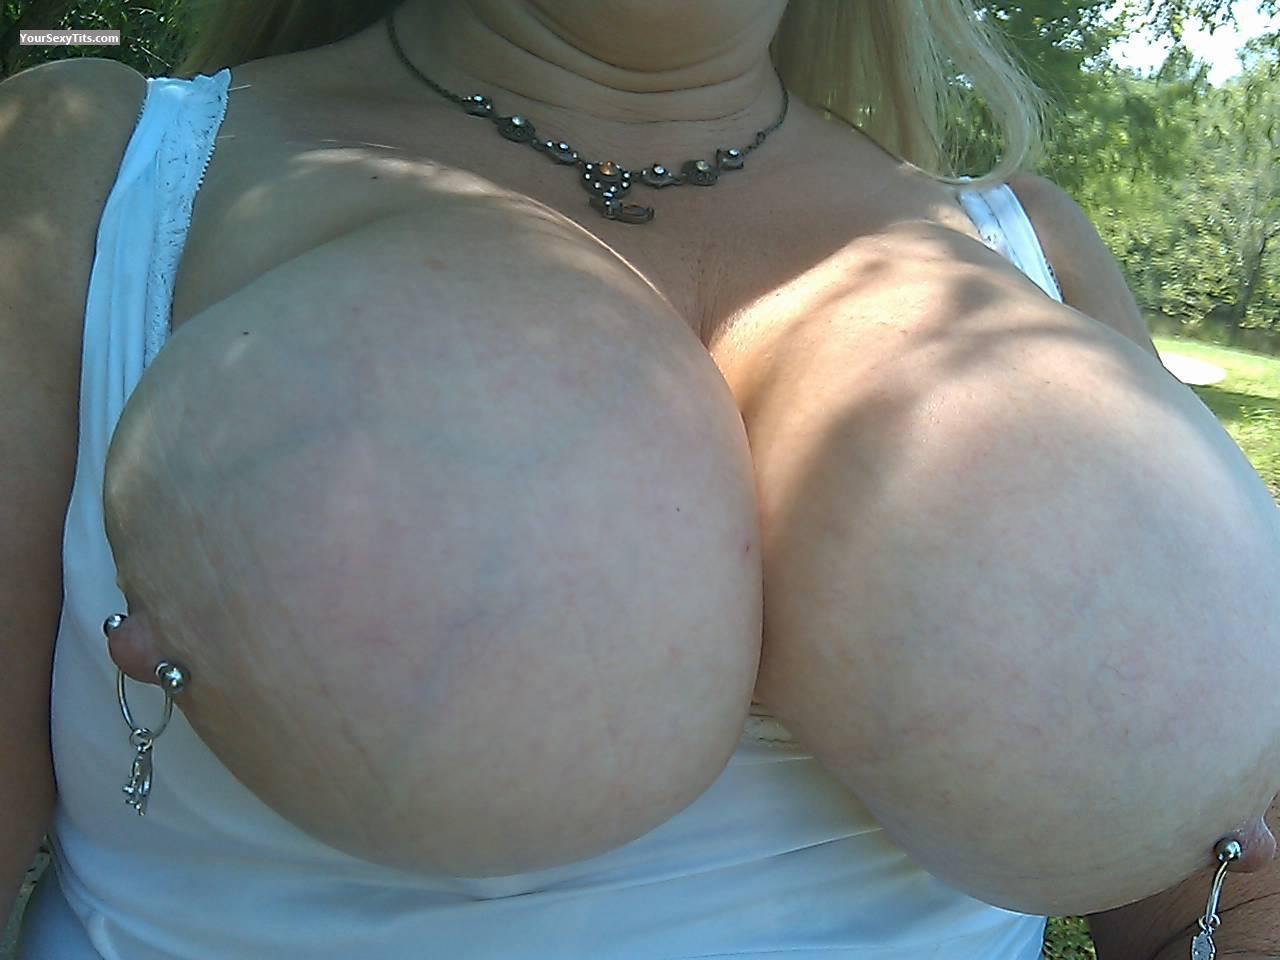 Tit Flash: My Big Tits (Selfie) - PIX from United StatesPierced Nipples